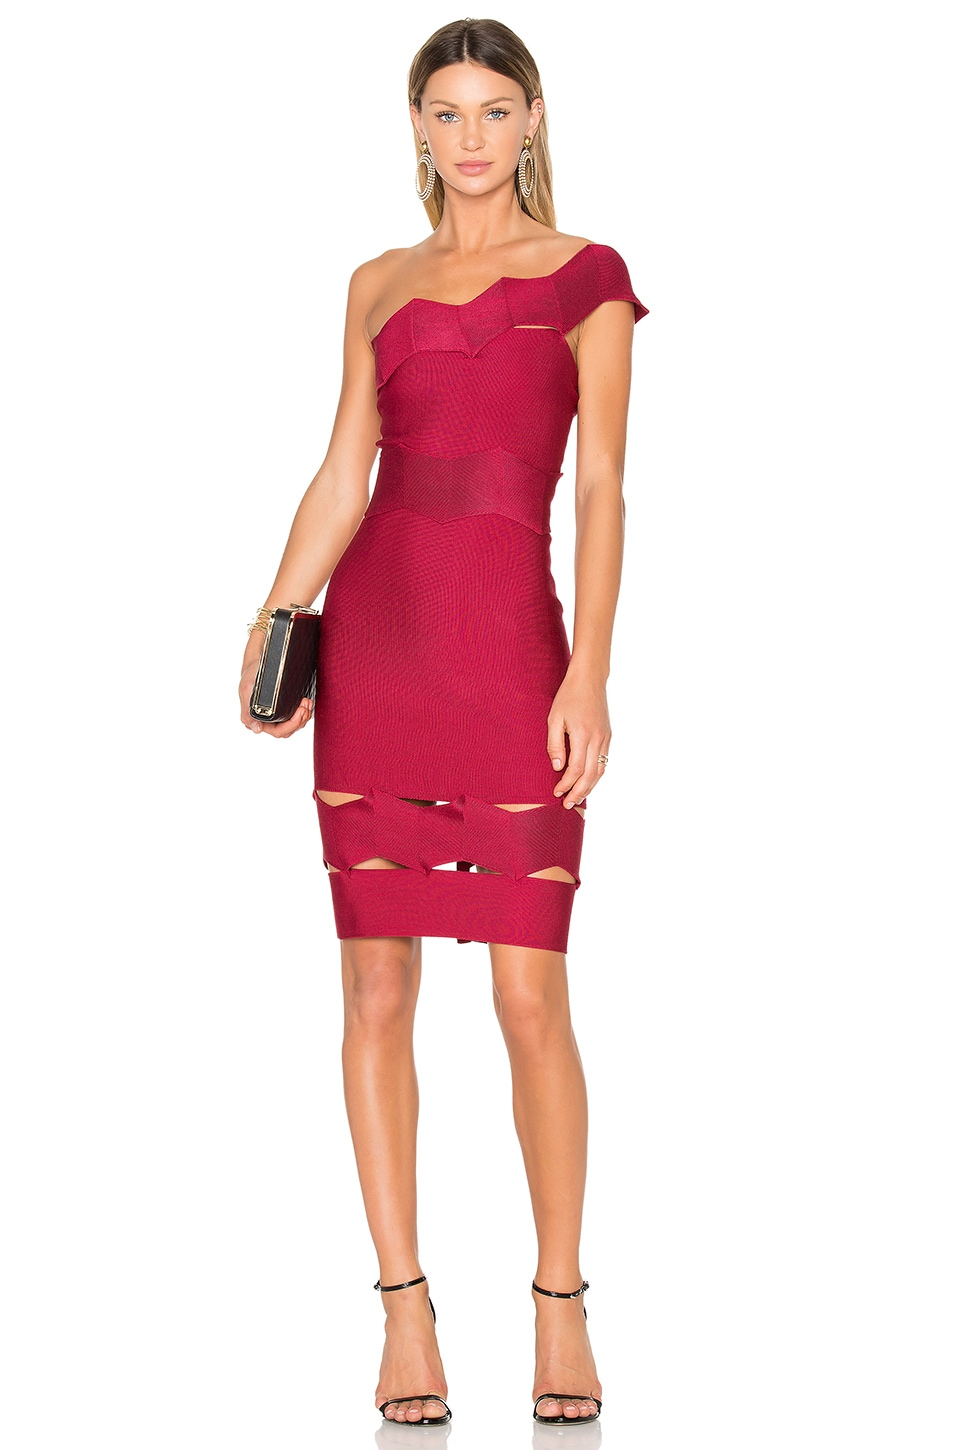 LOLITTA Livia One Shoulder Fitted Dress in Cereja